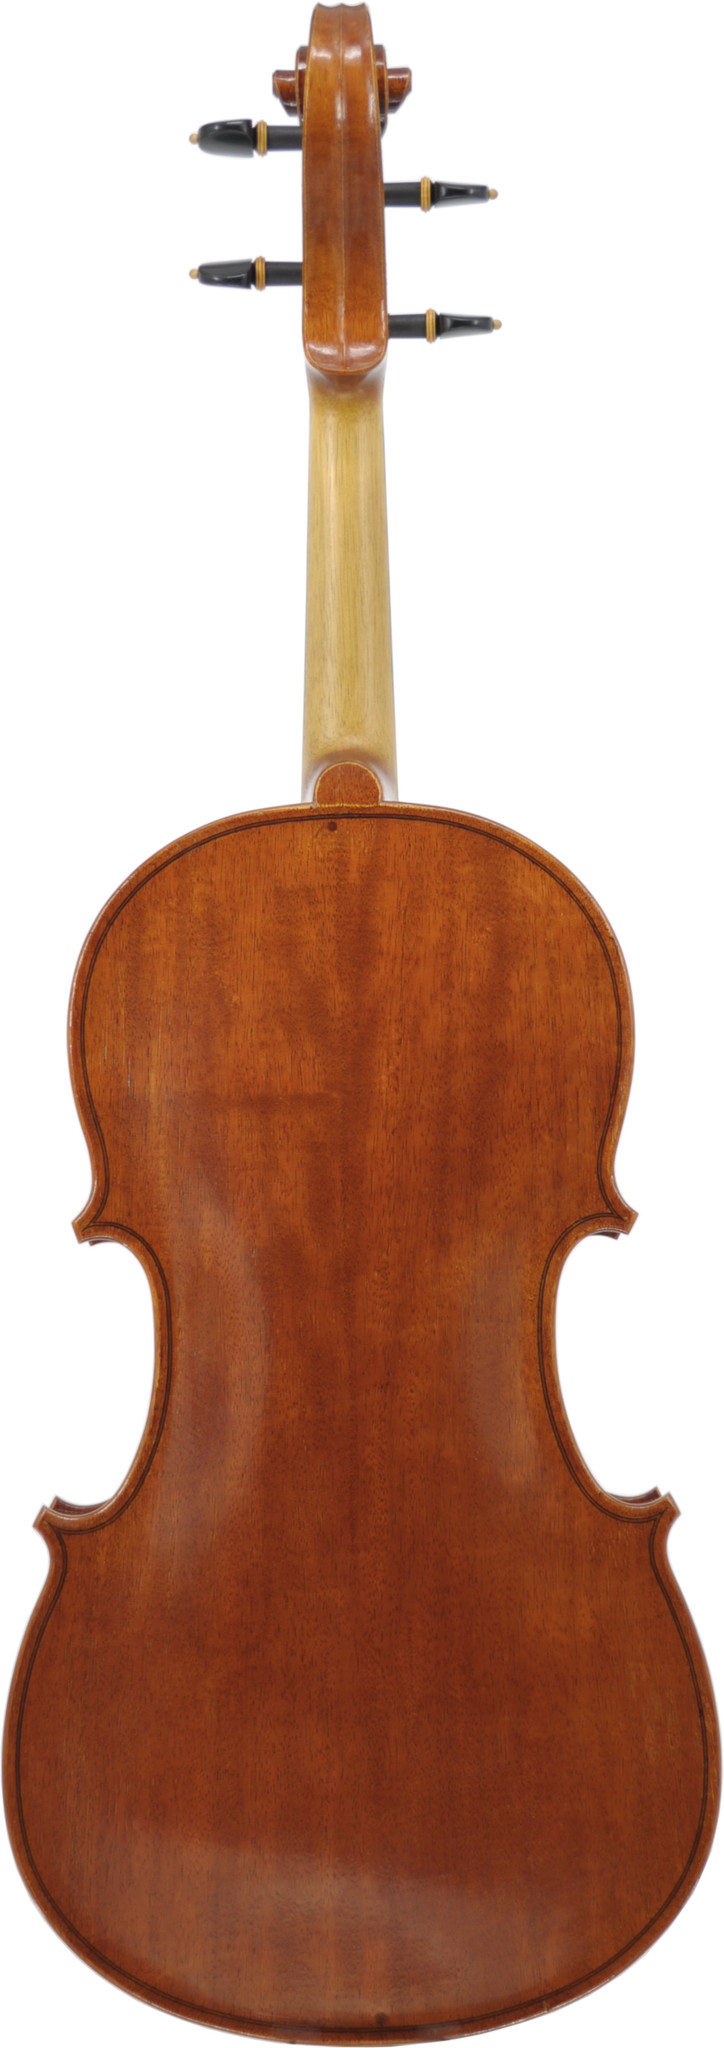 "15 7/8"" Dorian Barnes viola, 2020, Houston TX"